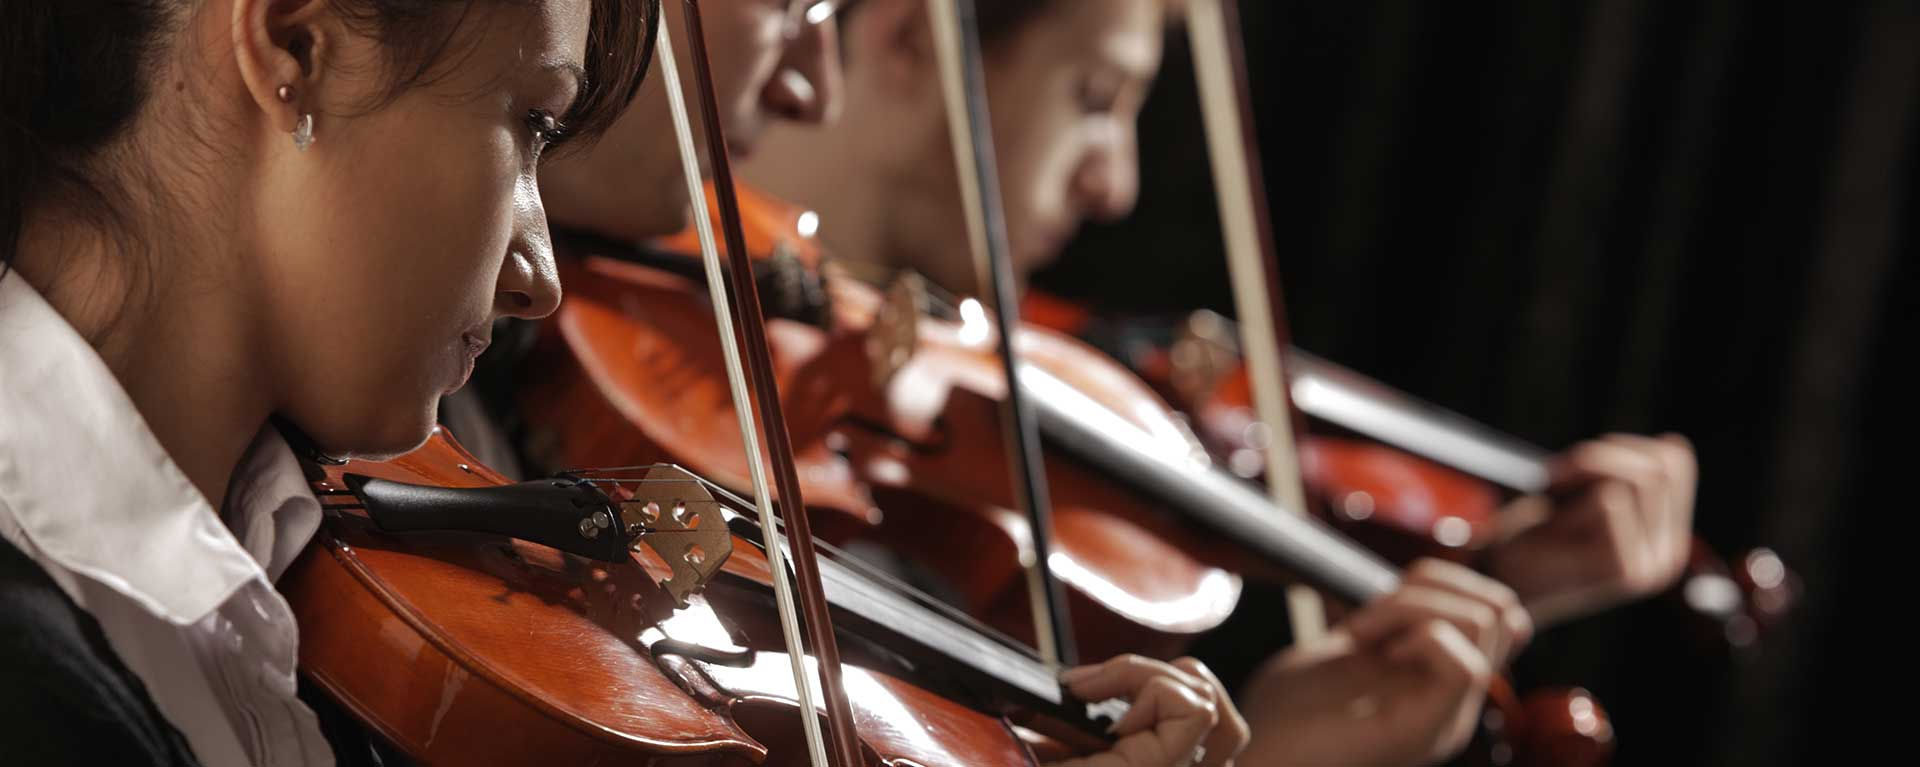 Oaks Christian music boarding school offers ways to inspire, cultivate and grow themselves.